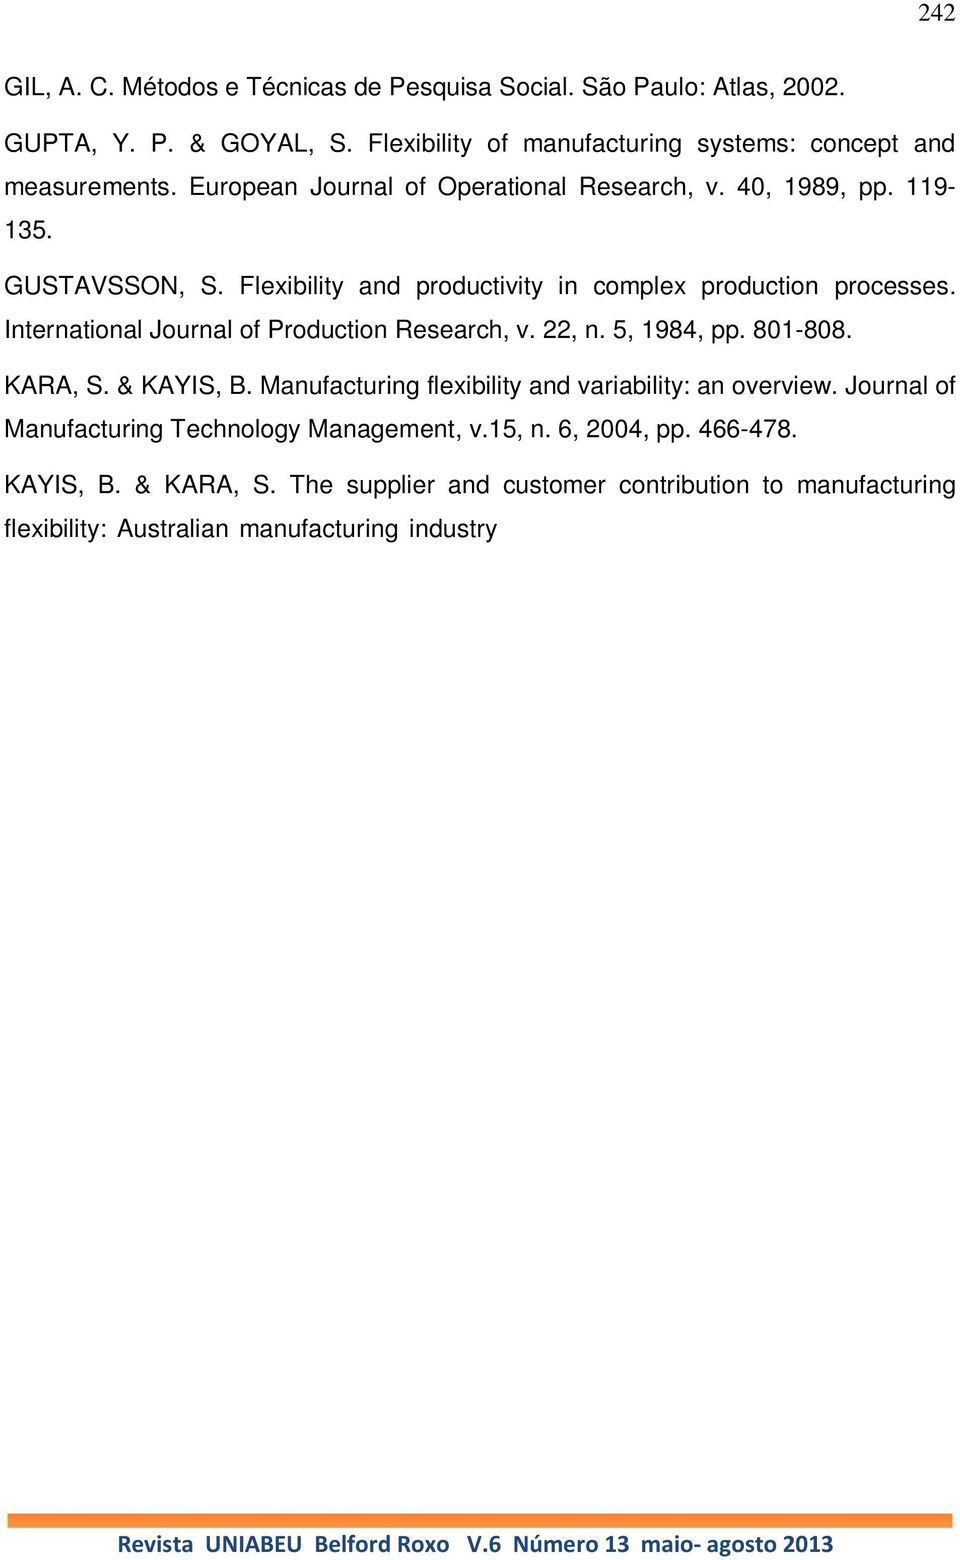 5, 1984, pp. 801-808. KARA, S. & KAYIS, B. Manufacturing flexibility and variability: an overview. Journal of Manufacturing Technology Management, v.15, n. 6, 2004, pp. 466-478. KAYIS, B. & KARA, S.